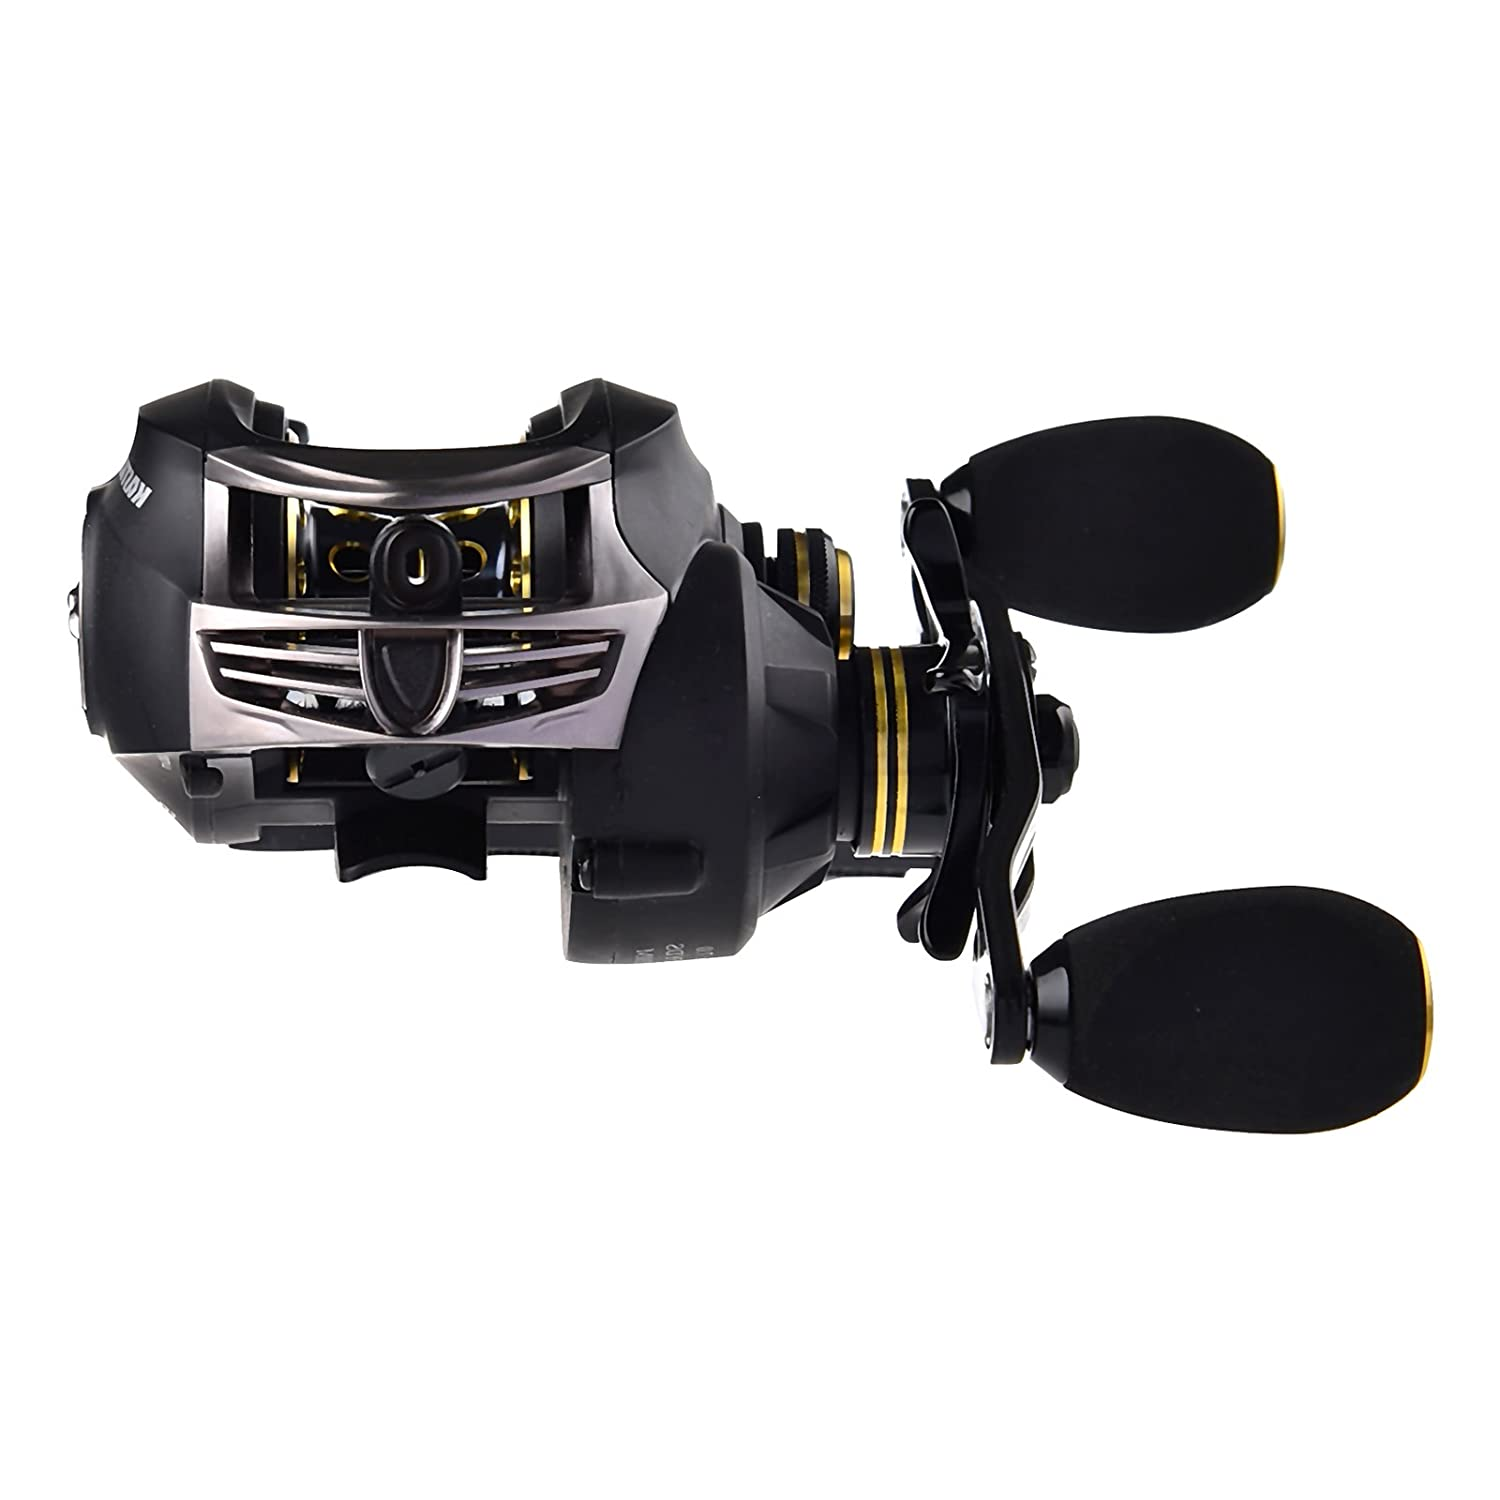 KastKing Stealth Baitcasting Reel - All Carbon Baitcaster Fishing Reel - 6oz Super Light Weight